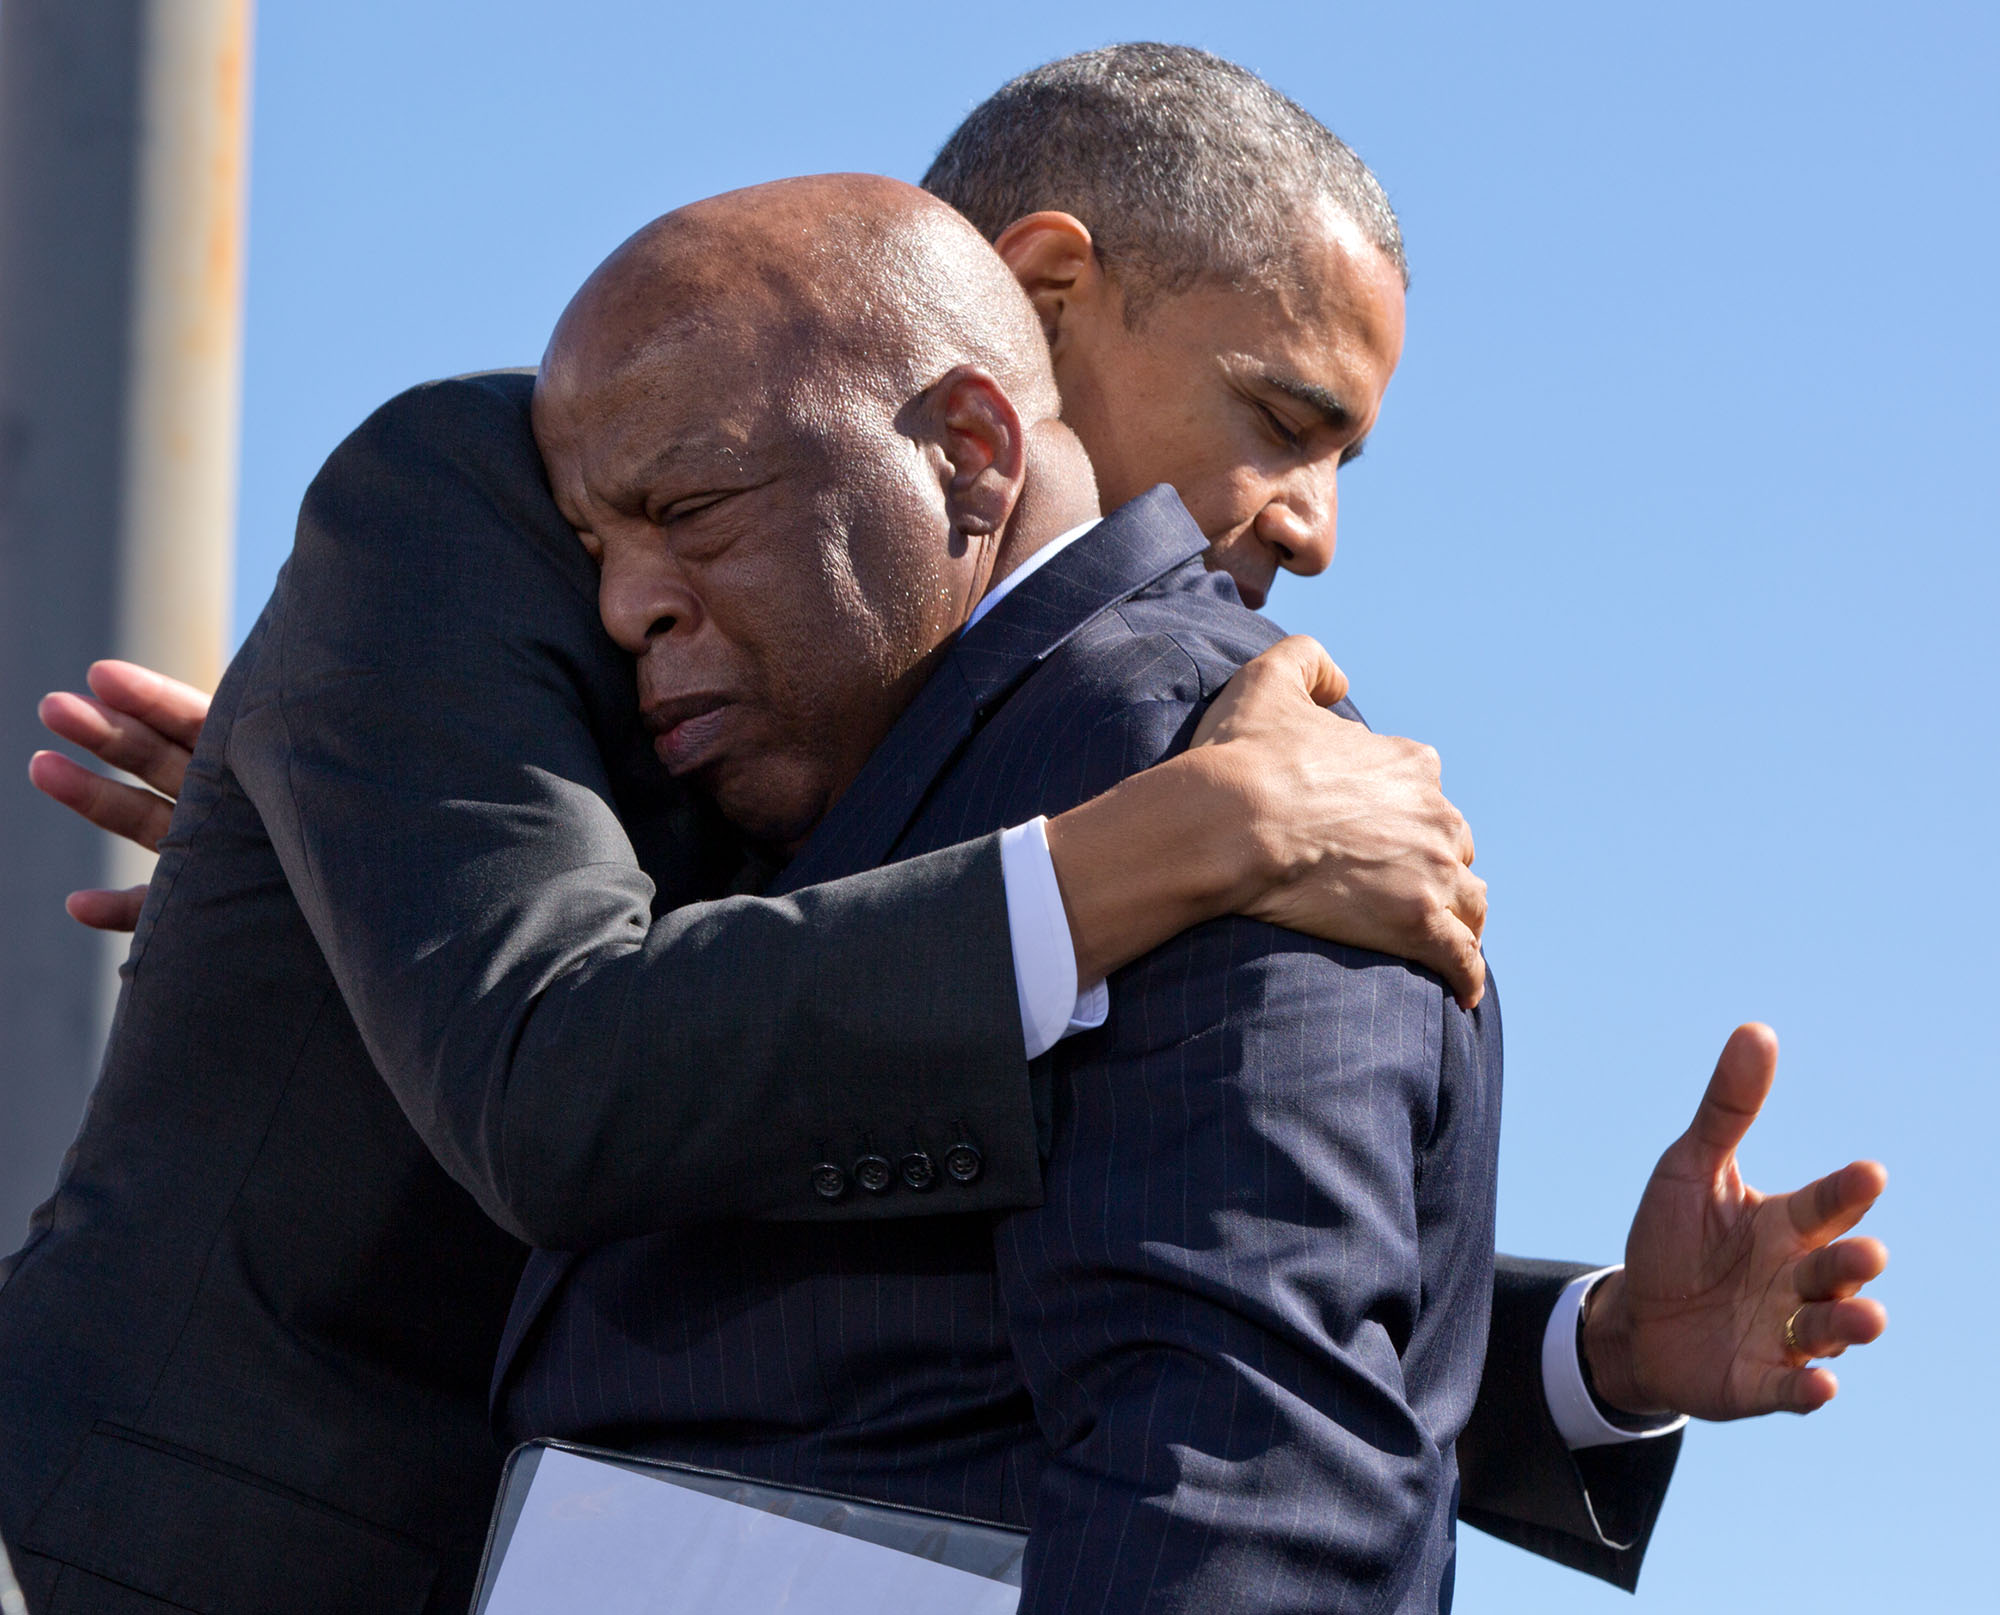 The President hugs Rep. John Lewis after his introduction. (Official White House Photo by Pete Souza)